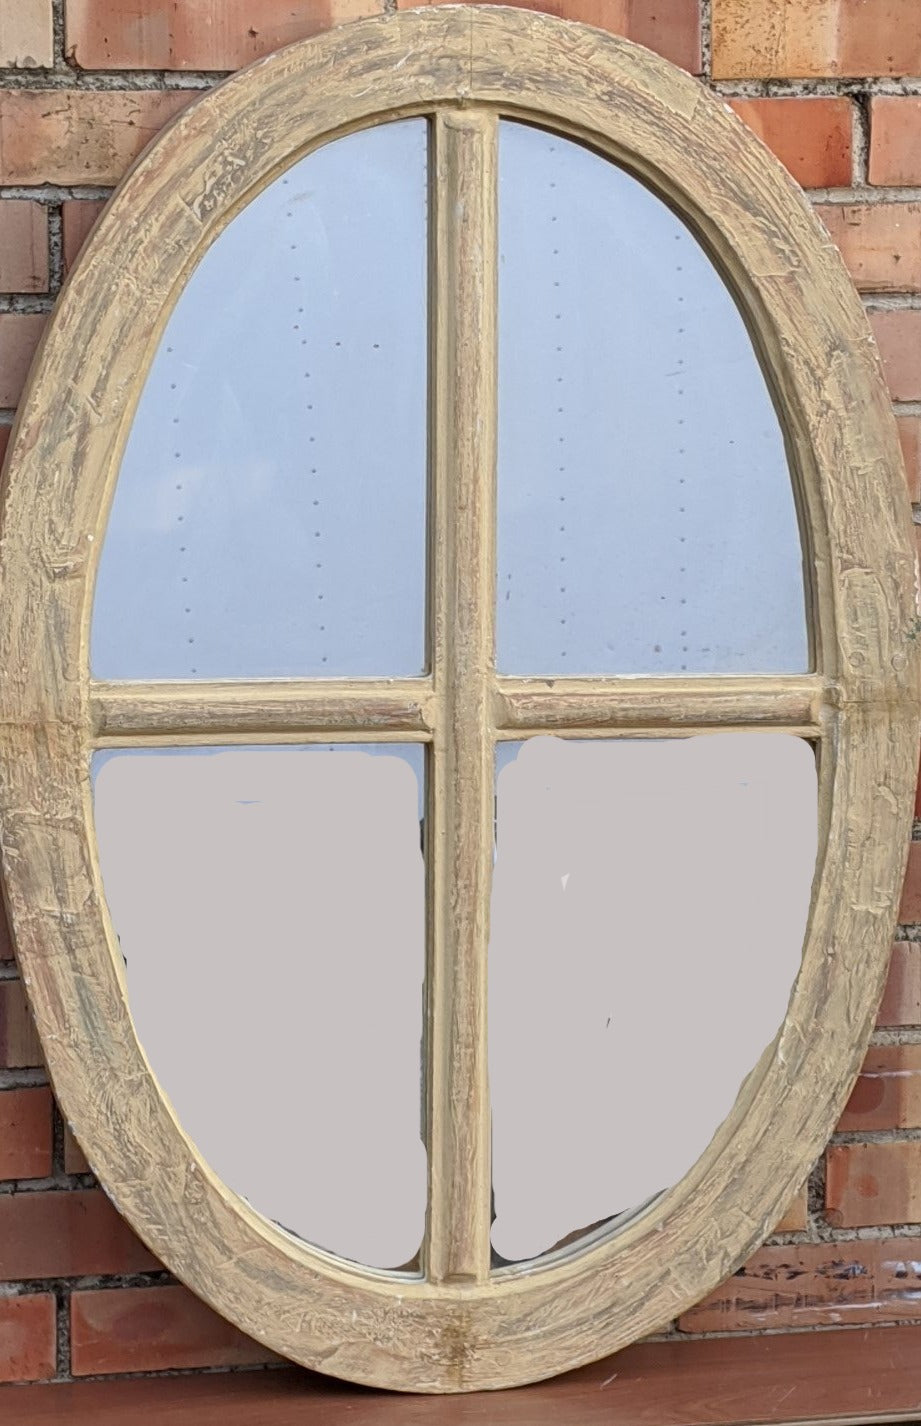 PAINTED OVAL MIRROR WINDOW WITH MULLIONS